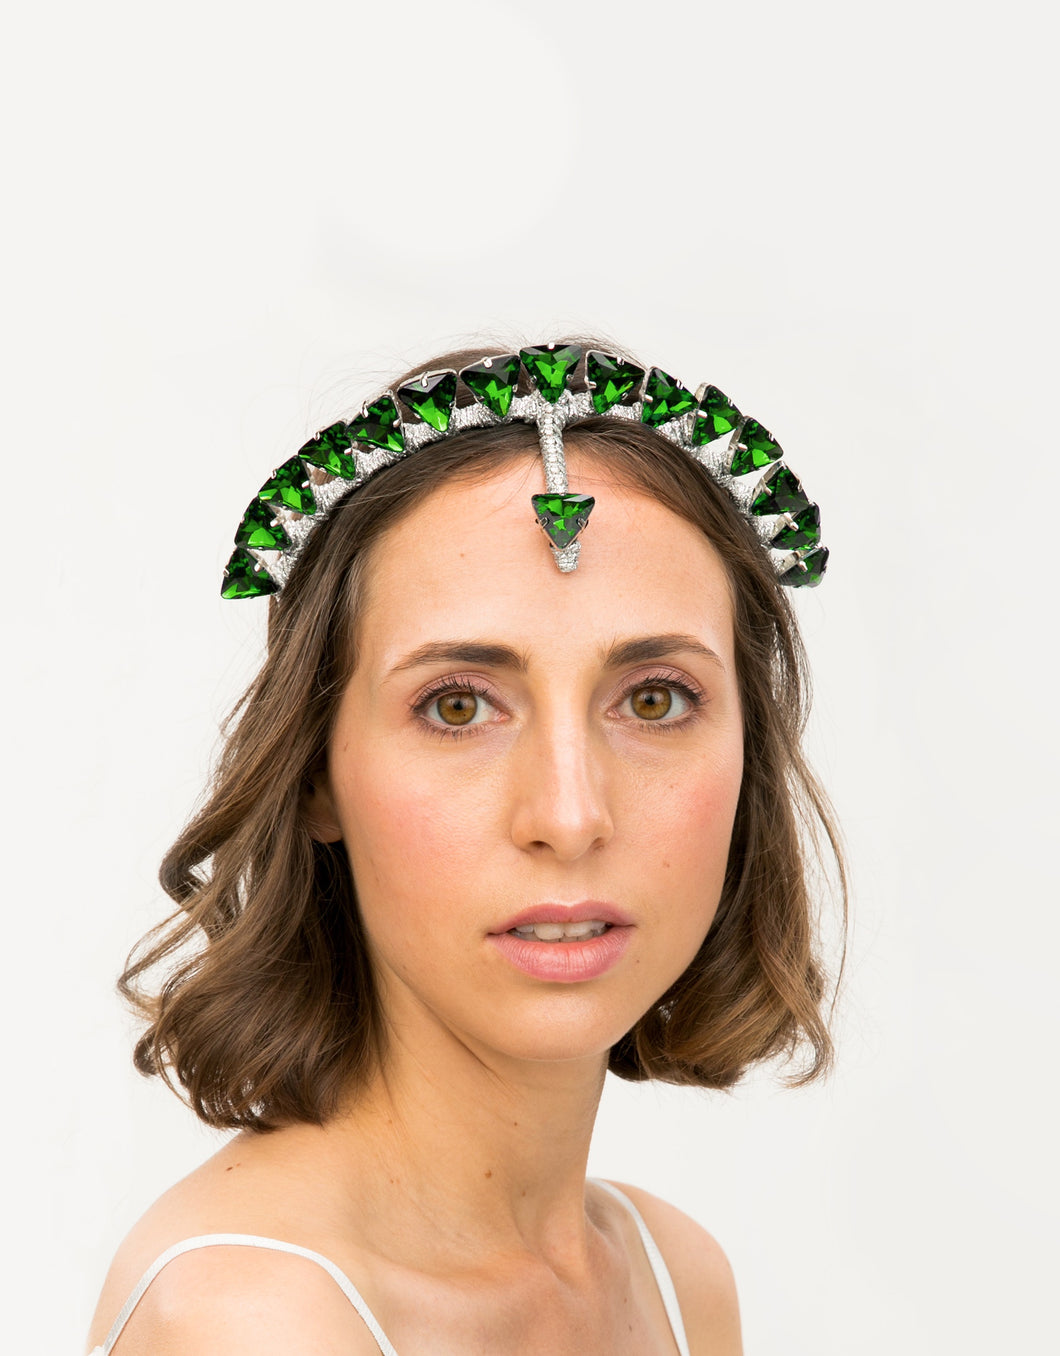 Model with headband embellished with green triangle crystals